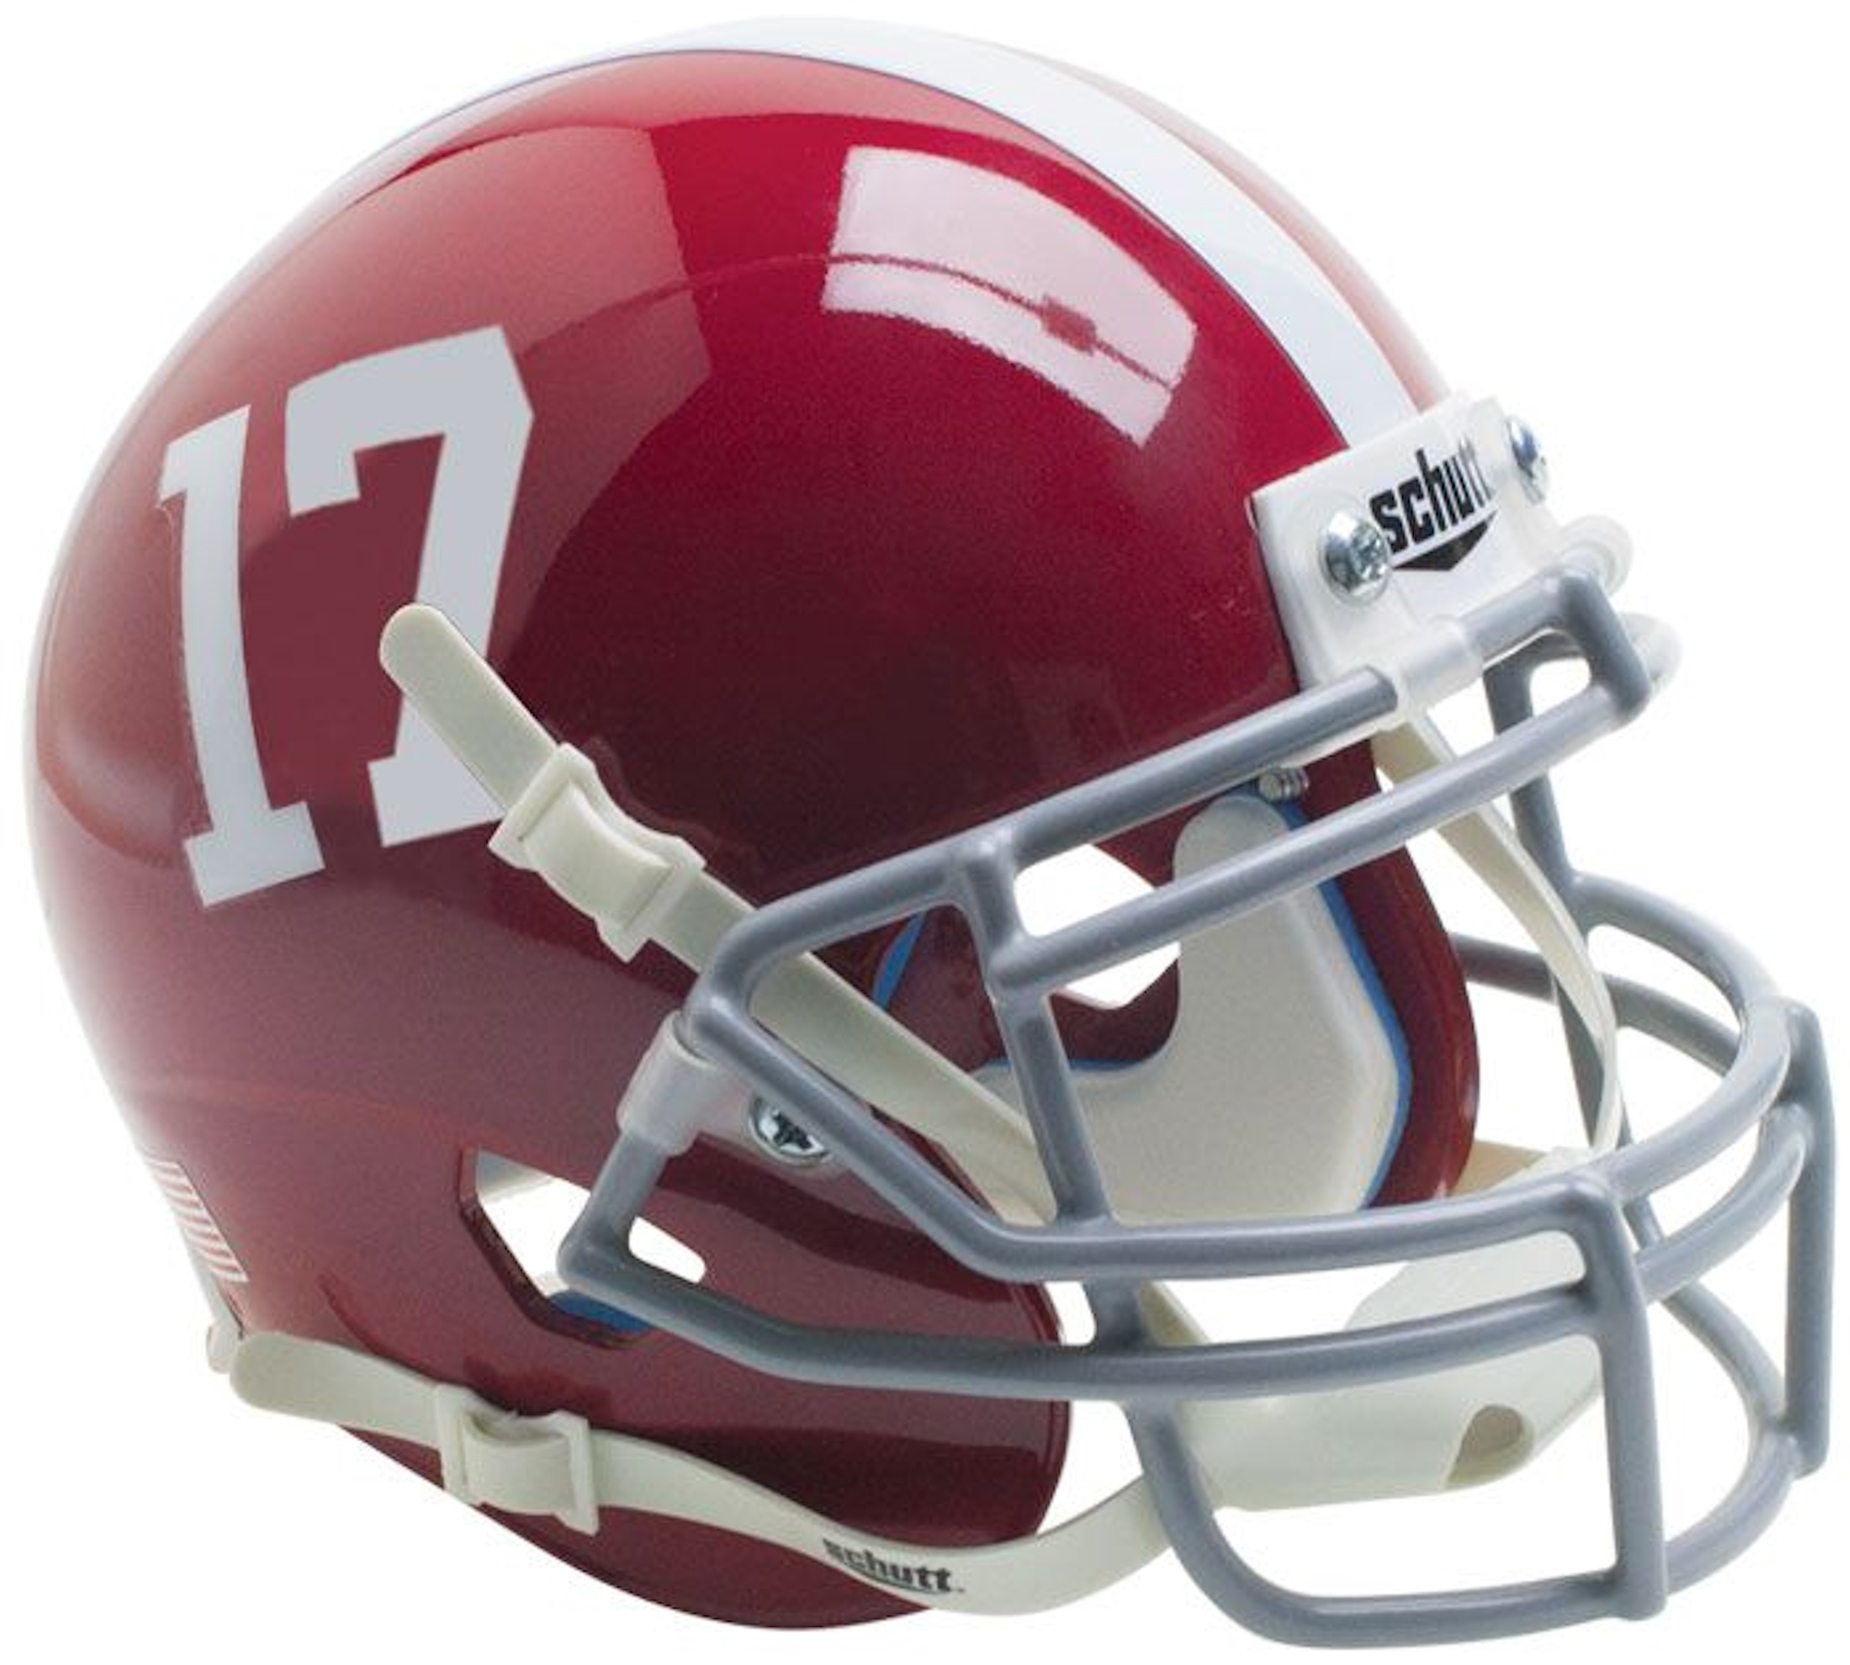 Alabama Crimson Tide Authentic College XP Football Helmet Schutt #17